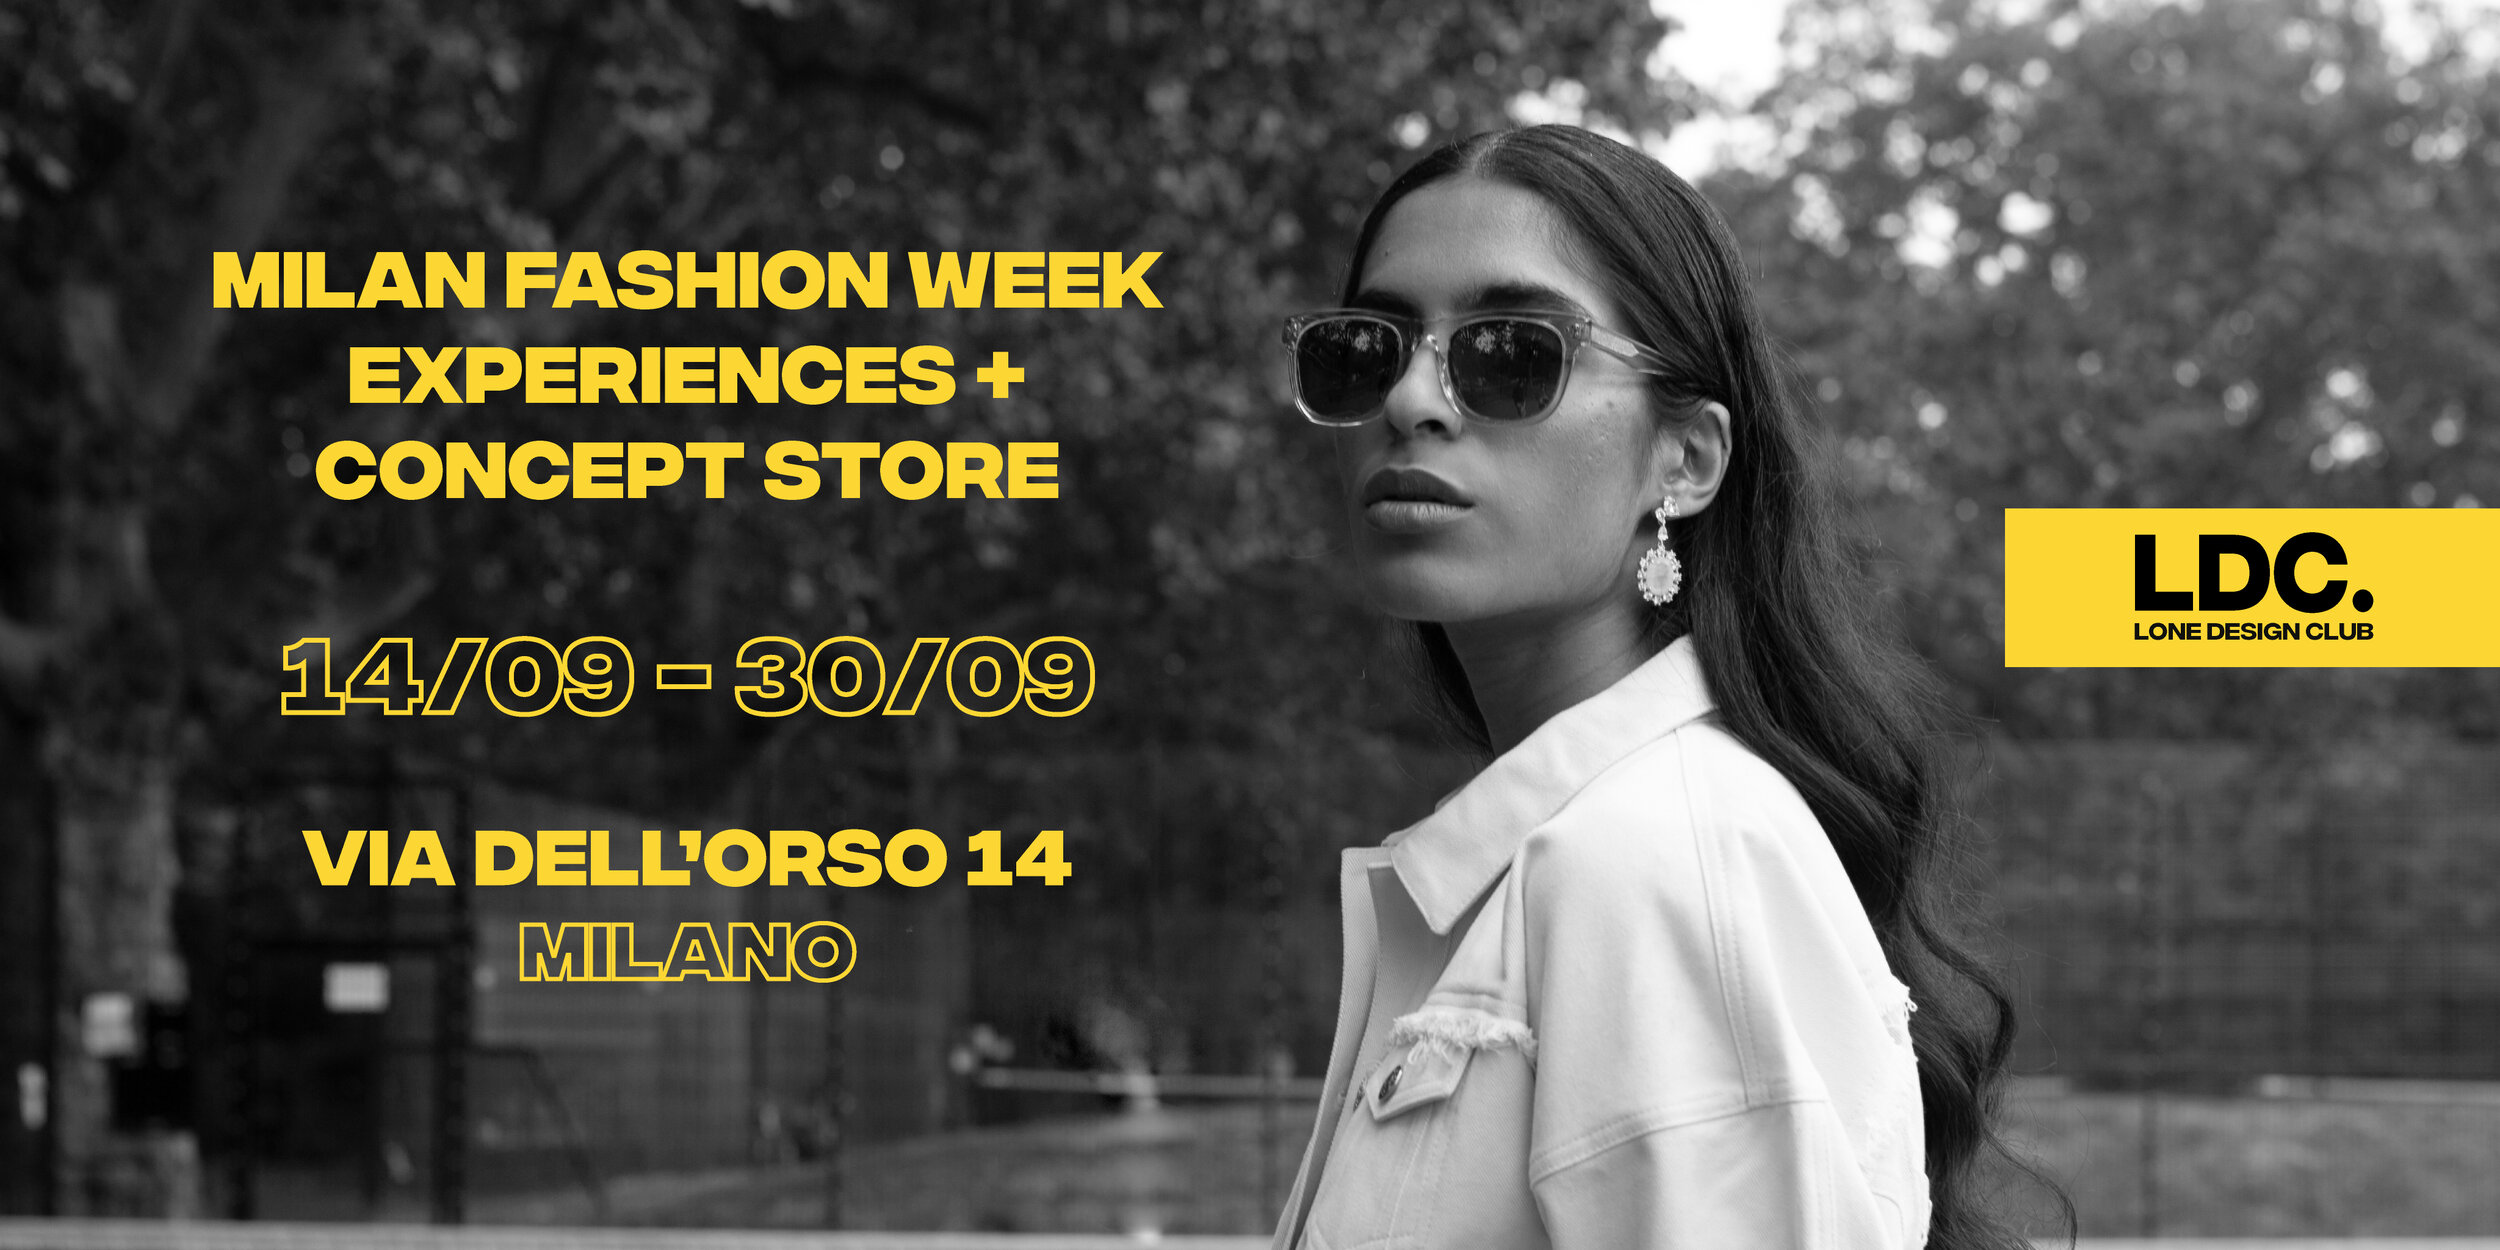 This September from 14th to the 30th, we are joining  Lone Design Club  pop-up retail experience in Milan! Open to press, media, industry AND consumers alike, discover unique + one-of-a-kind product, meet the designers behind the brands and join one of LDC exclusive daily events. Giving customers exclusive access to new collections, one off pieces and showcasing brand new designers.  Via Dell' Orso 14 Date: 14th - 30th September  10AM - 7PM daily Free entry, open to public  LONE DESIGN CLUB MILANO FASHION WEEK: Experiences + Concept Store!  PREMIUM - ETHICAL - IMMERSIVE